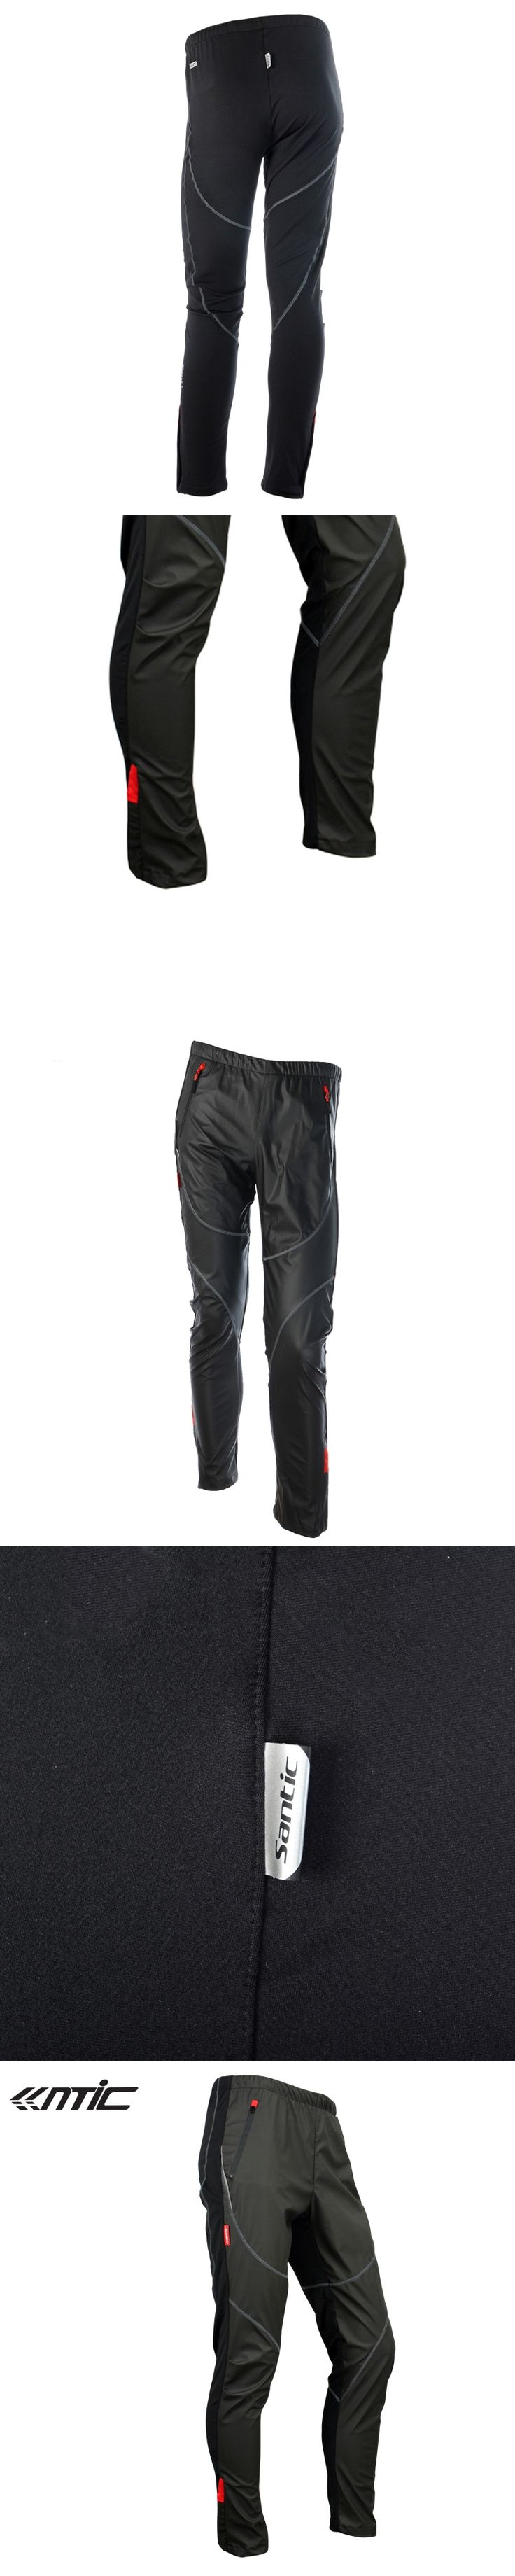 SANTIC Cycling Fleece Thermal Wind Pants Winter Pants Tights-James Mens Sports Trousers Plus Size Track Padded Windproof Pants